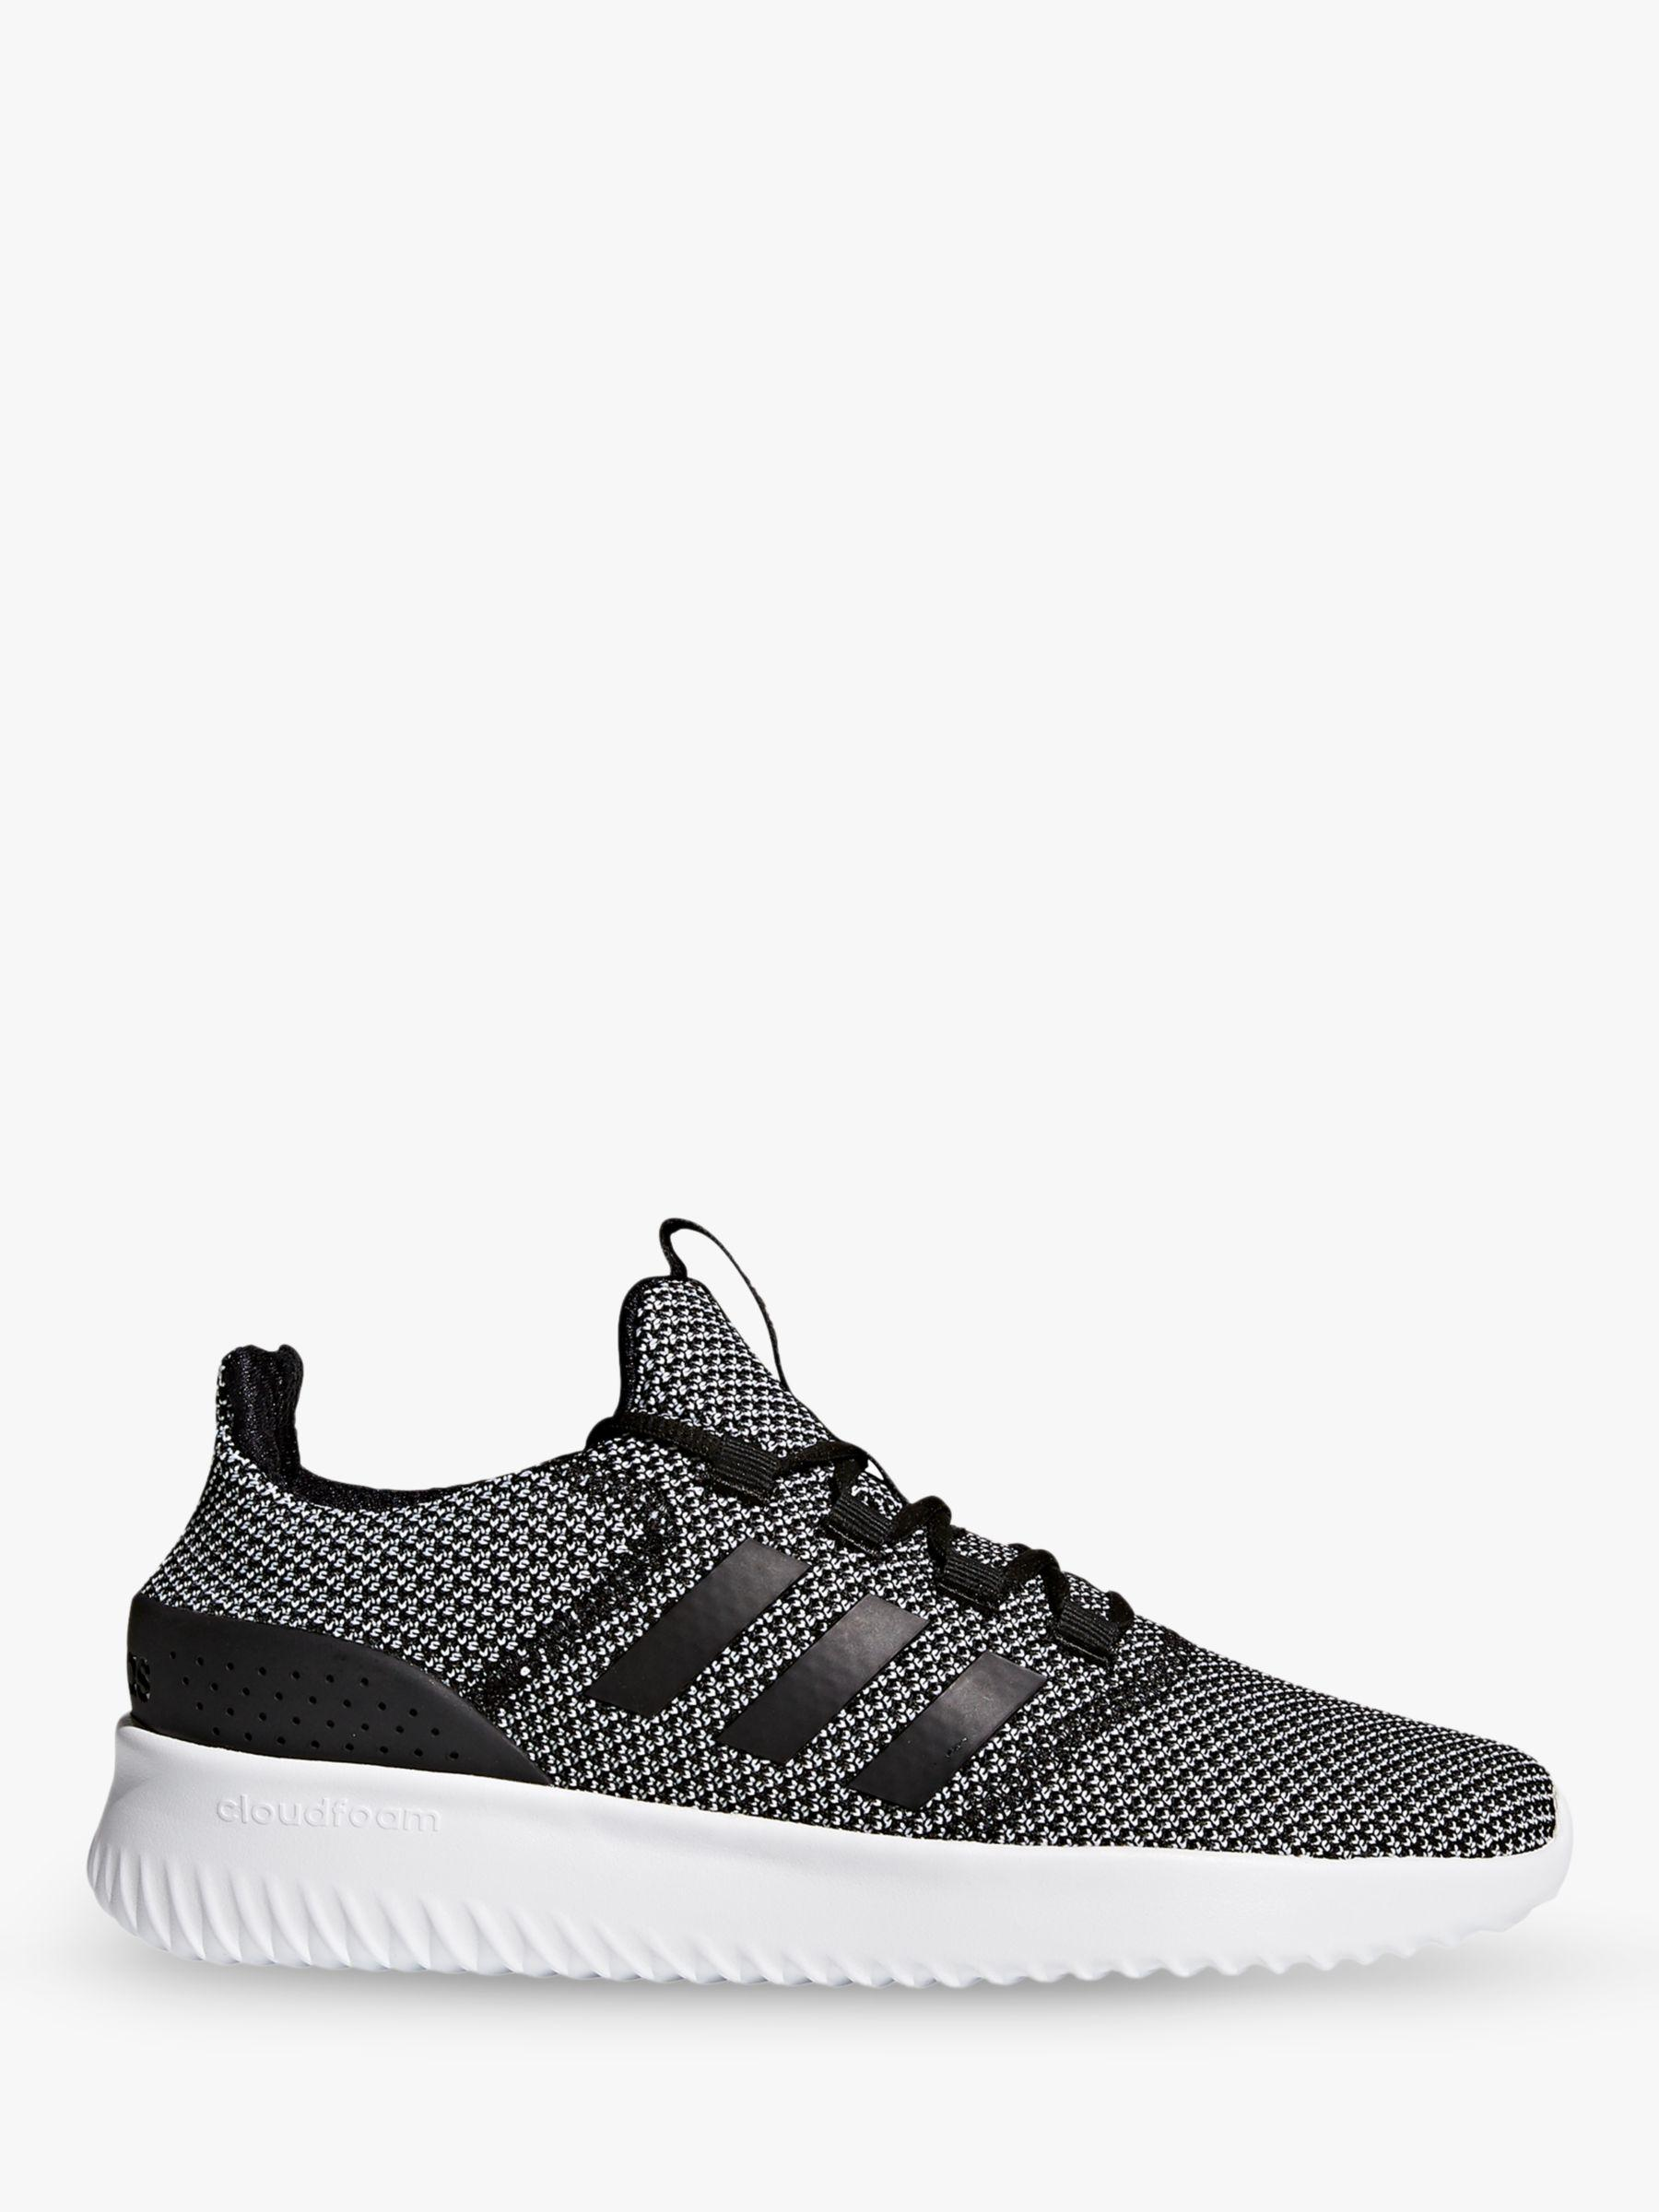 adidas Cloudfoam Ultimate Men s Trainers in Black for Men - Lyst 6edbd14ac